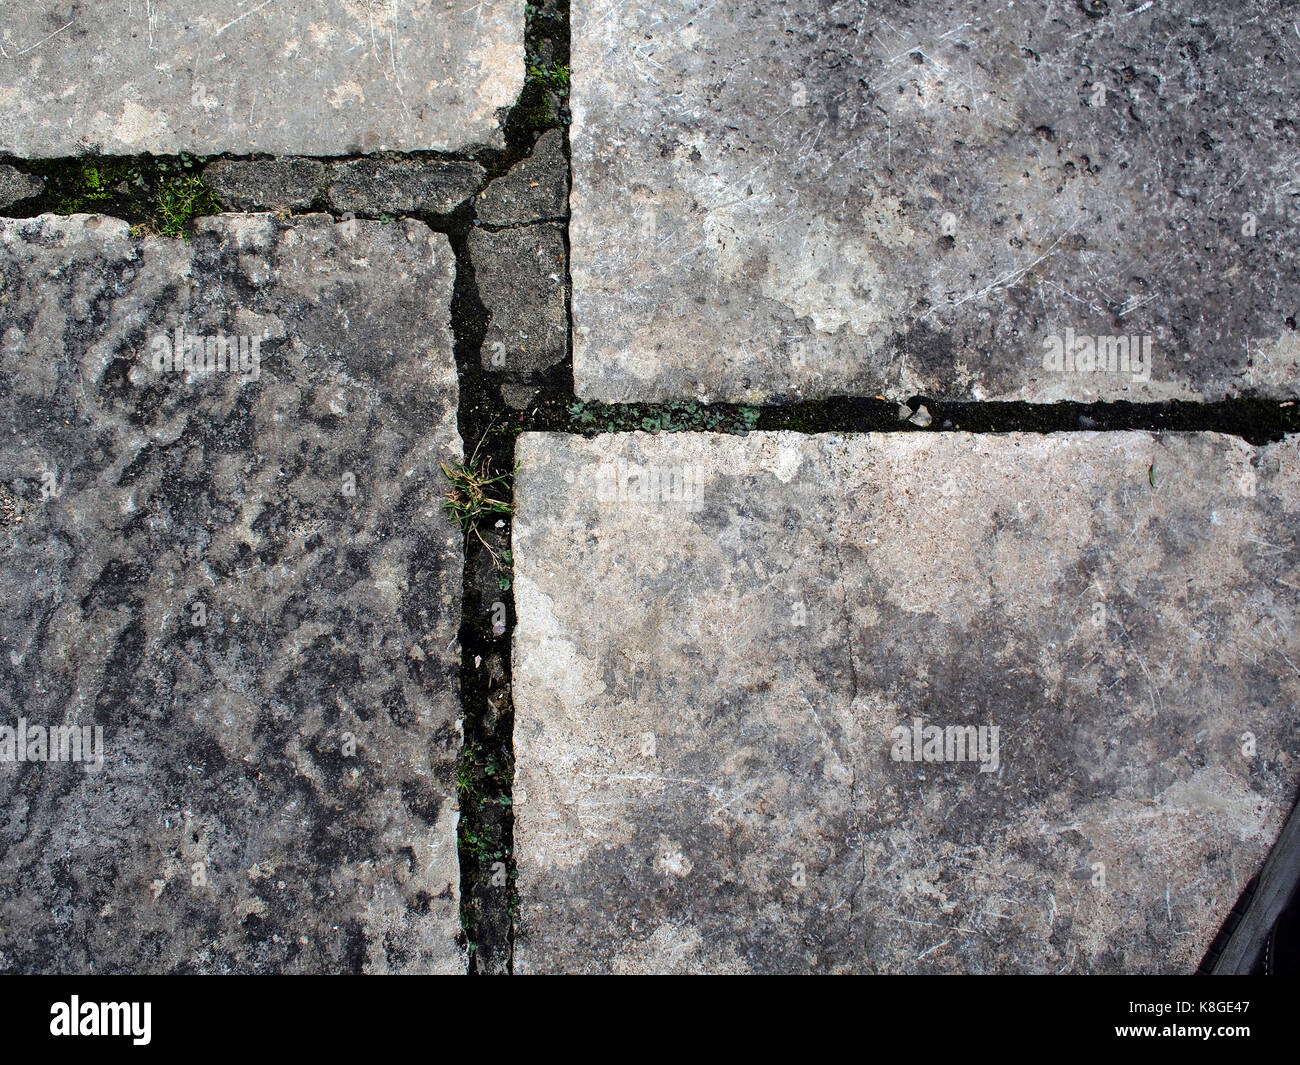 Detail of stone paving slabs with weathered joints. Stock Photo